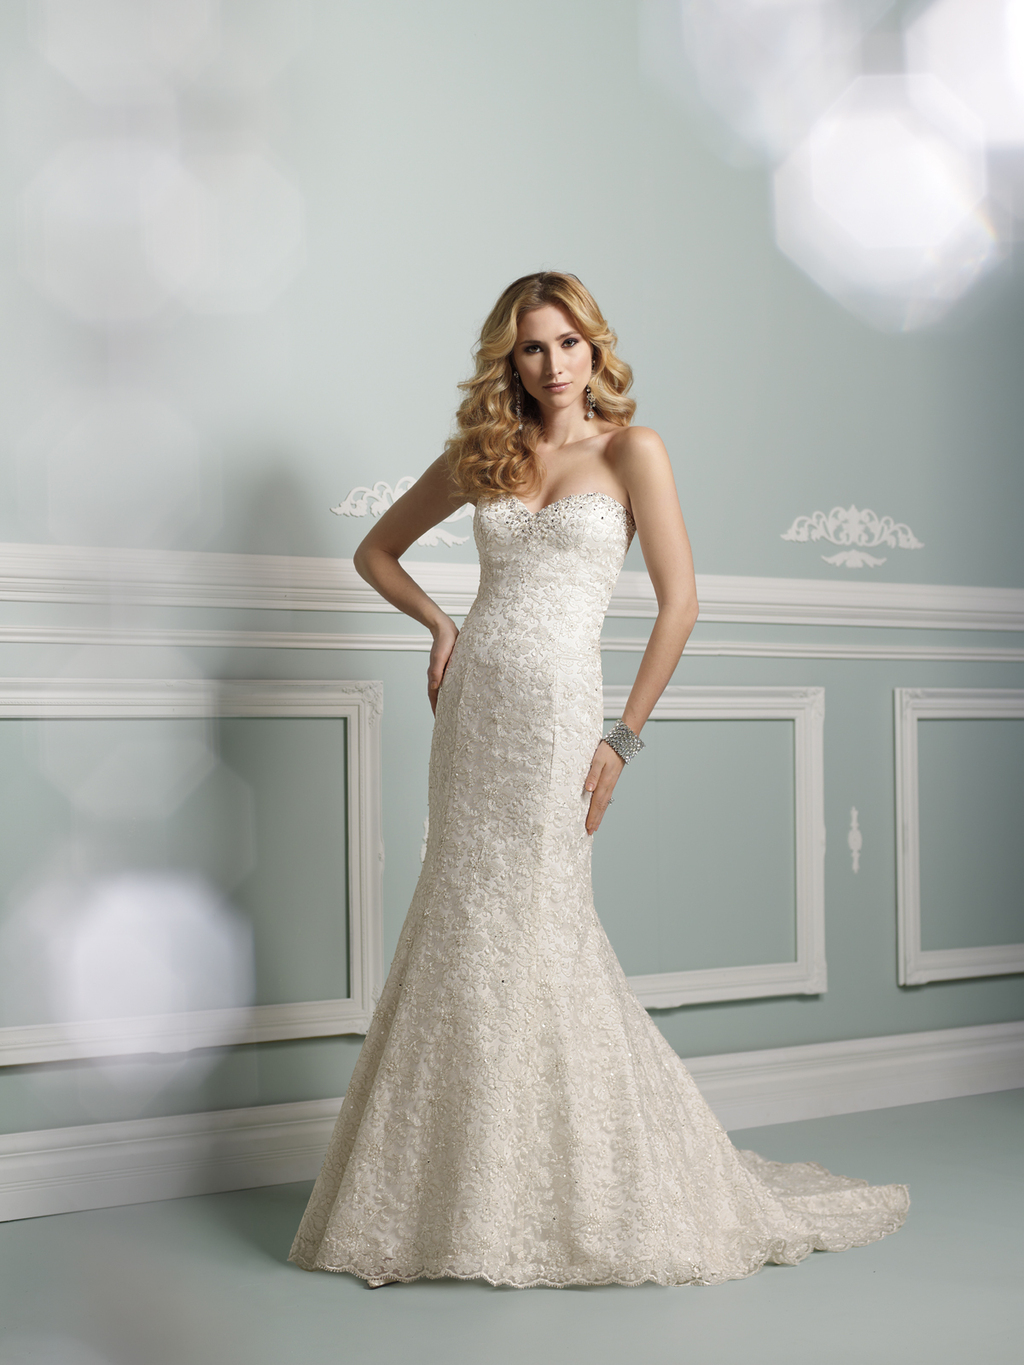 Wedding-dress-james-clifford-collection-mon-cheri-fall-2012-bridal-gown-j21269.full